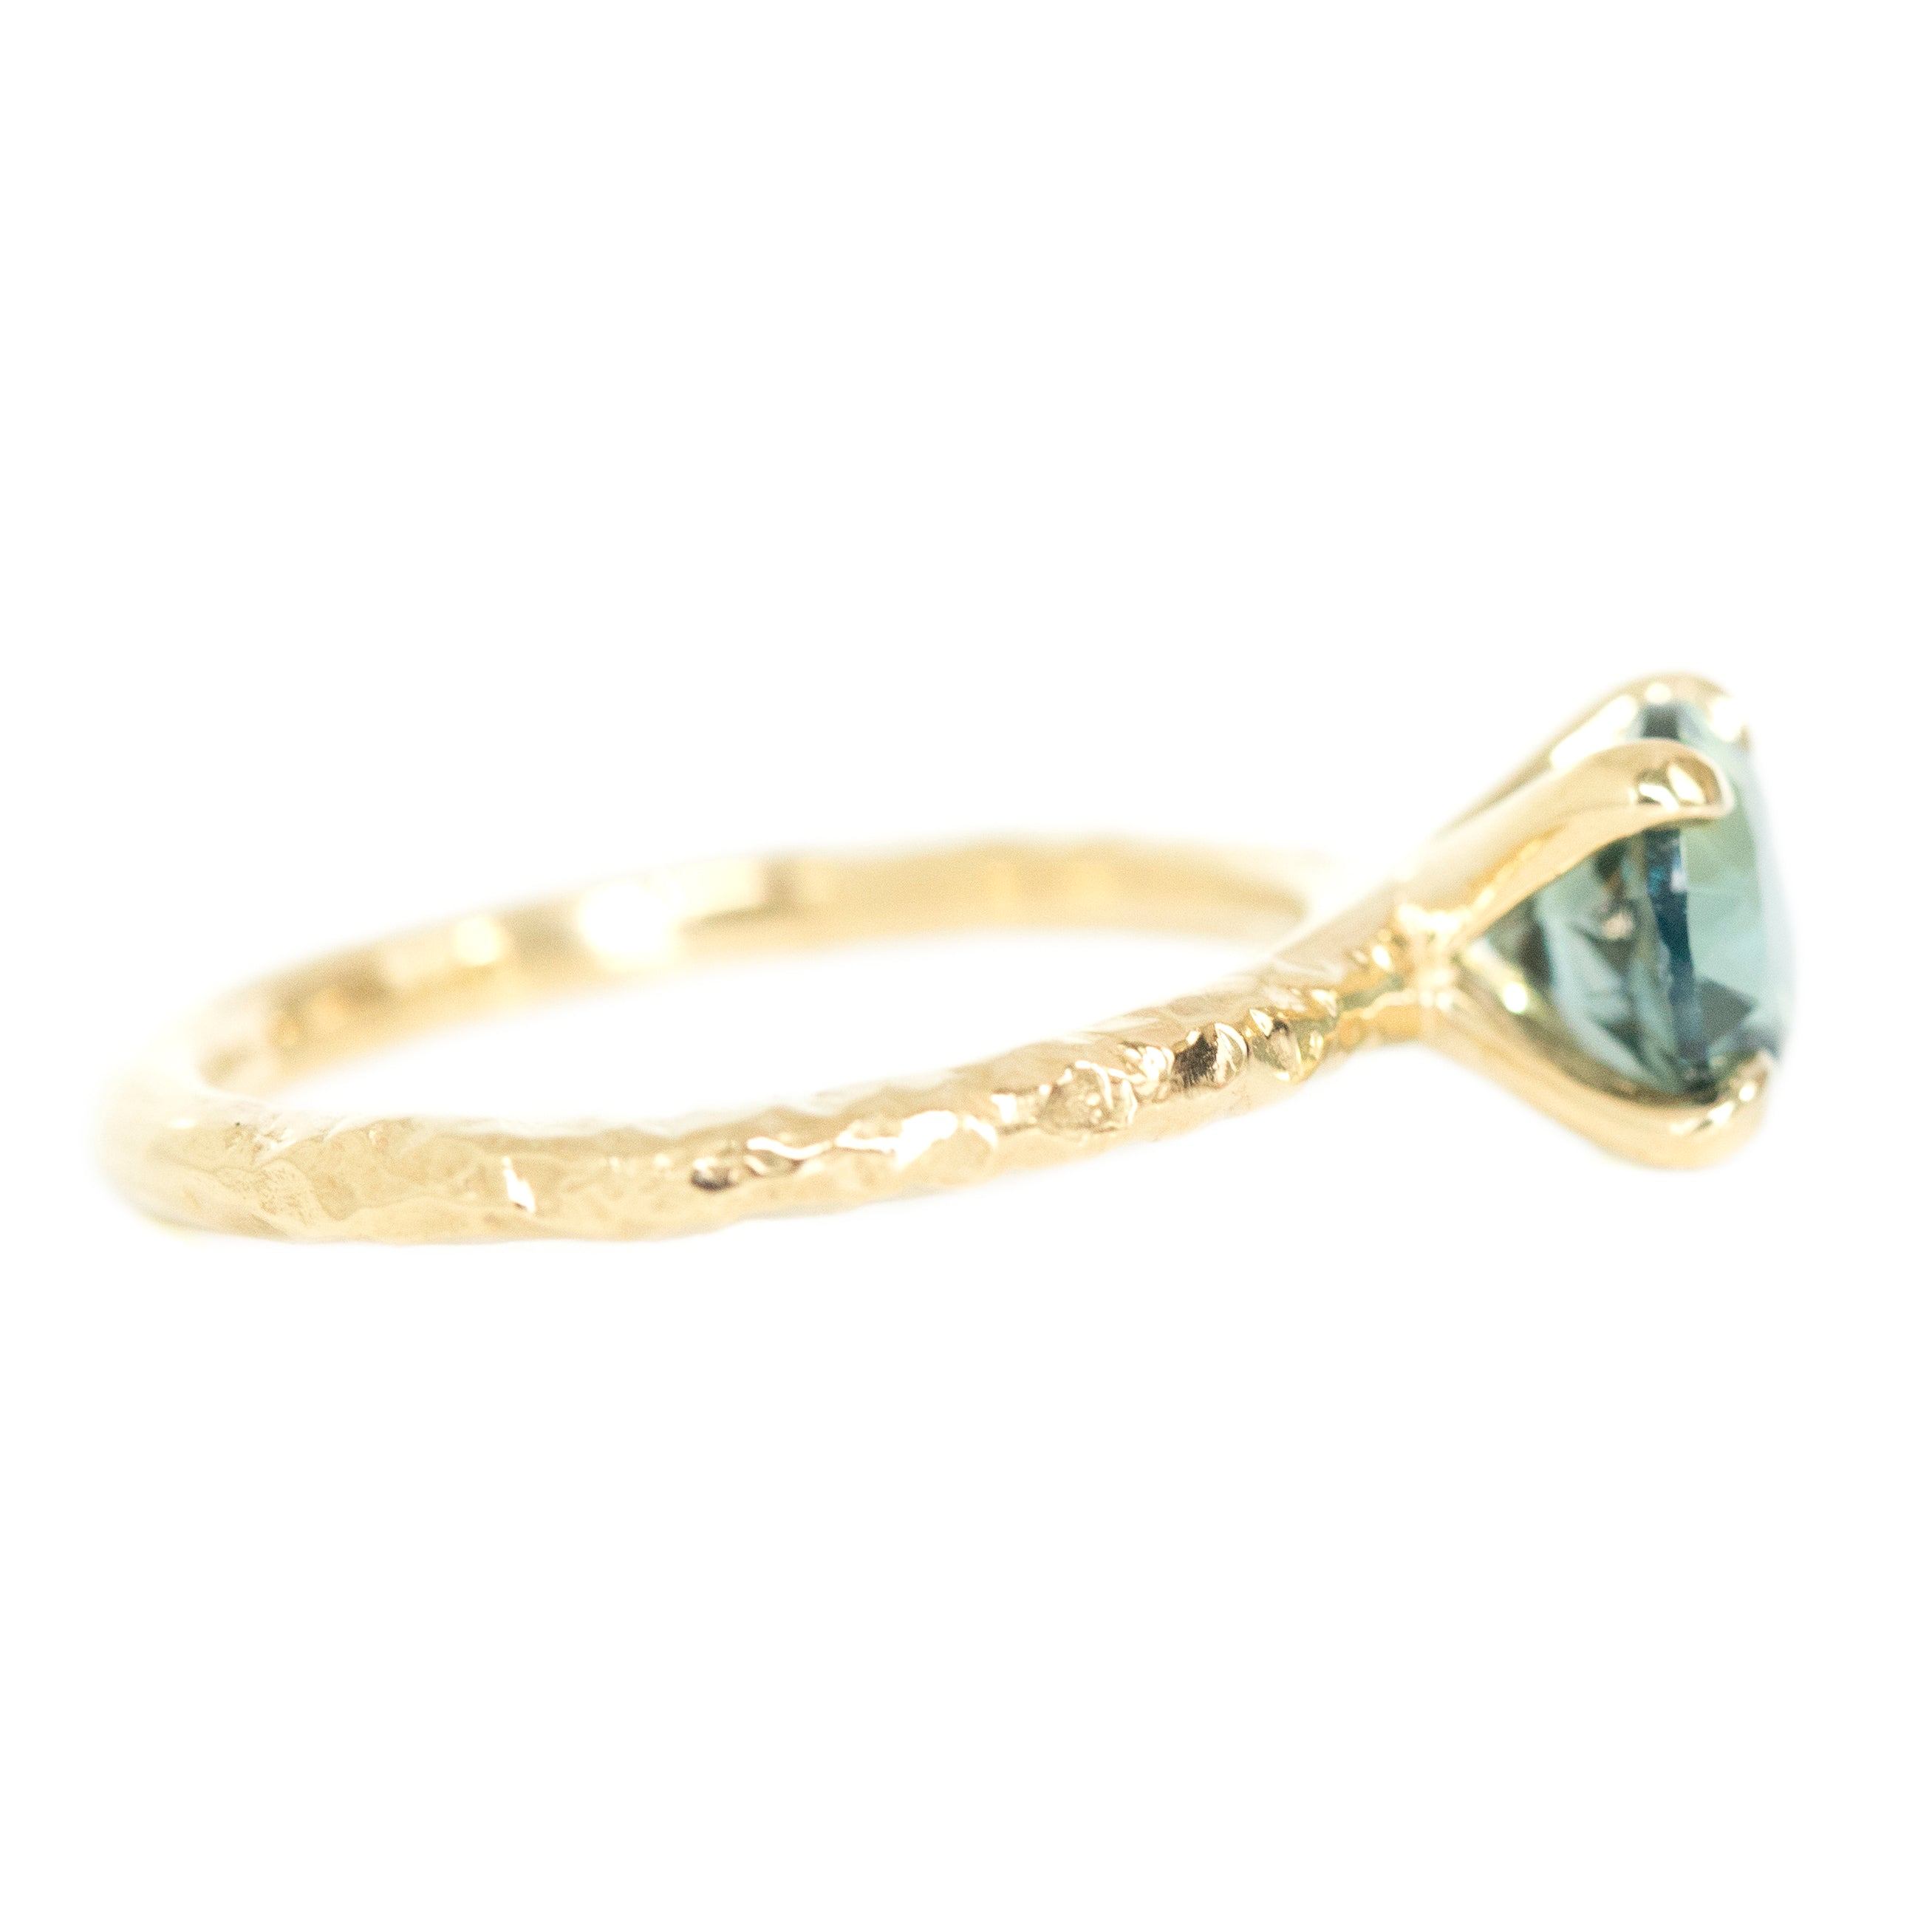 1.60ct Round Sapphire Solitaire In 14k Yellow Gold Evergreen